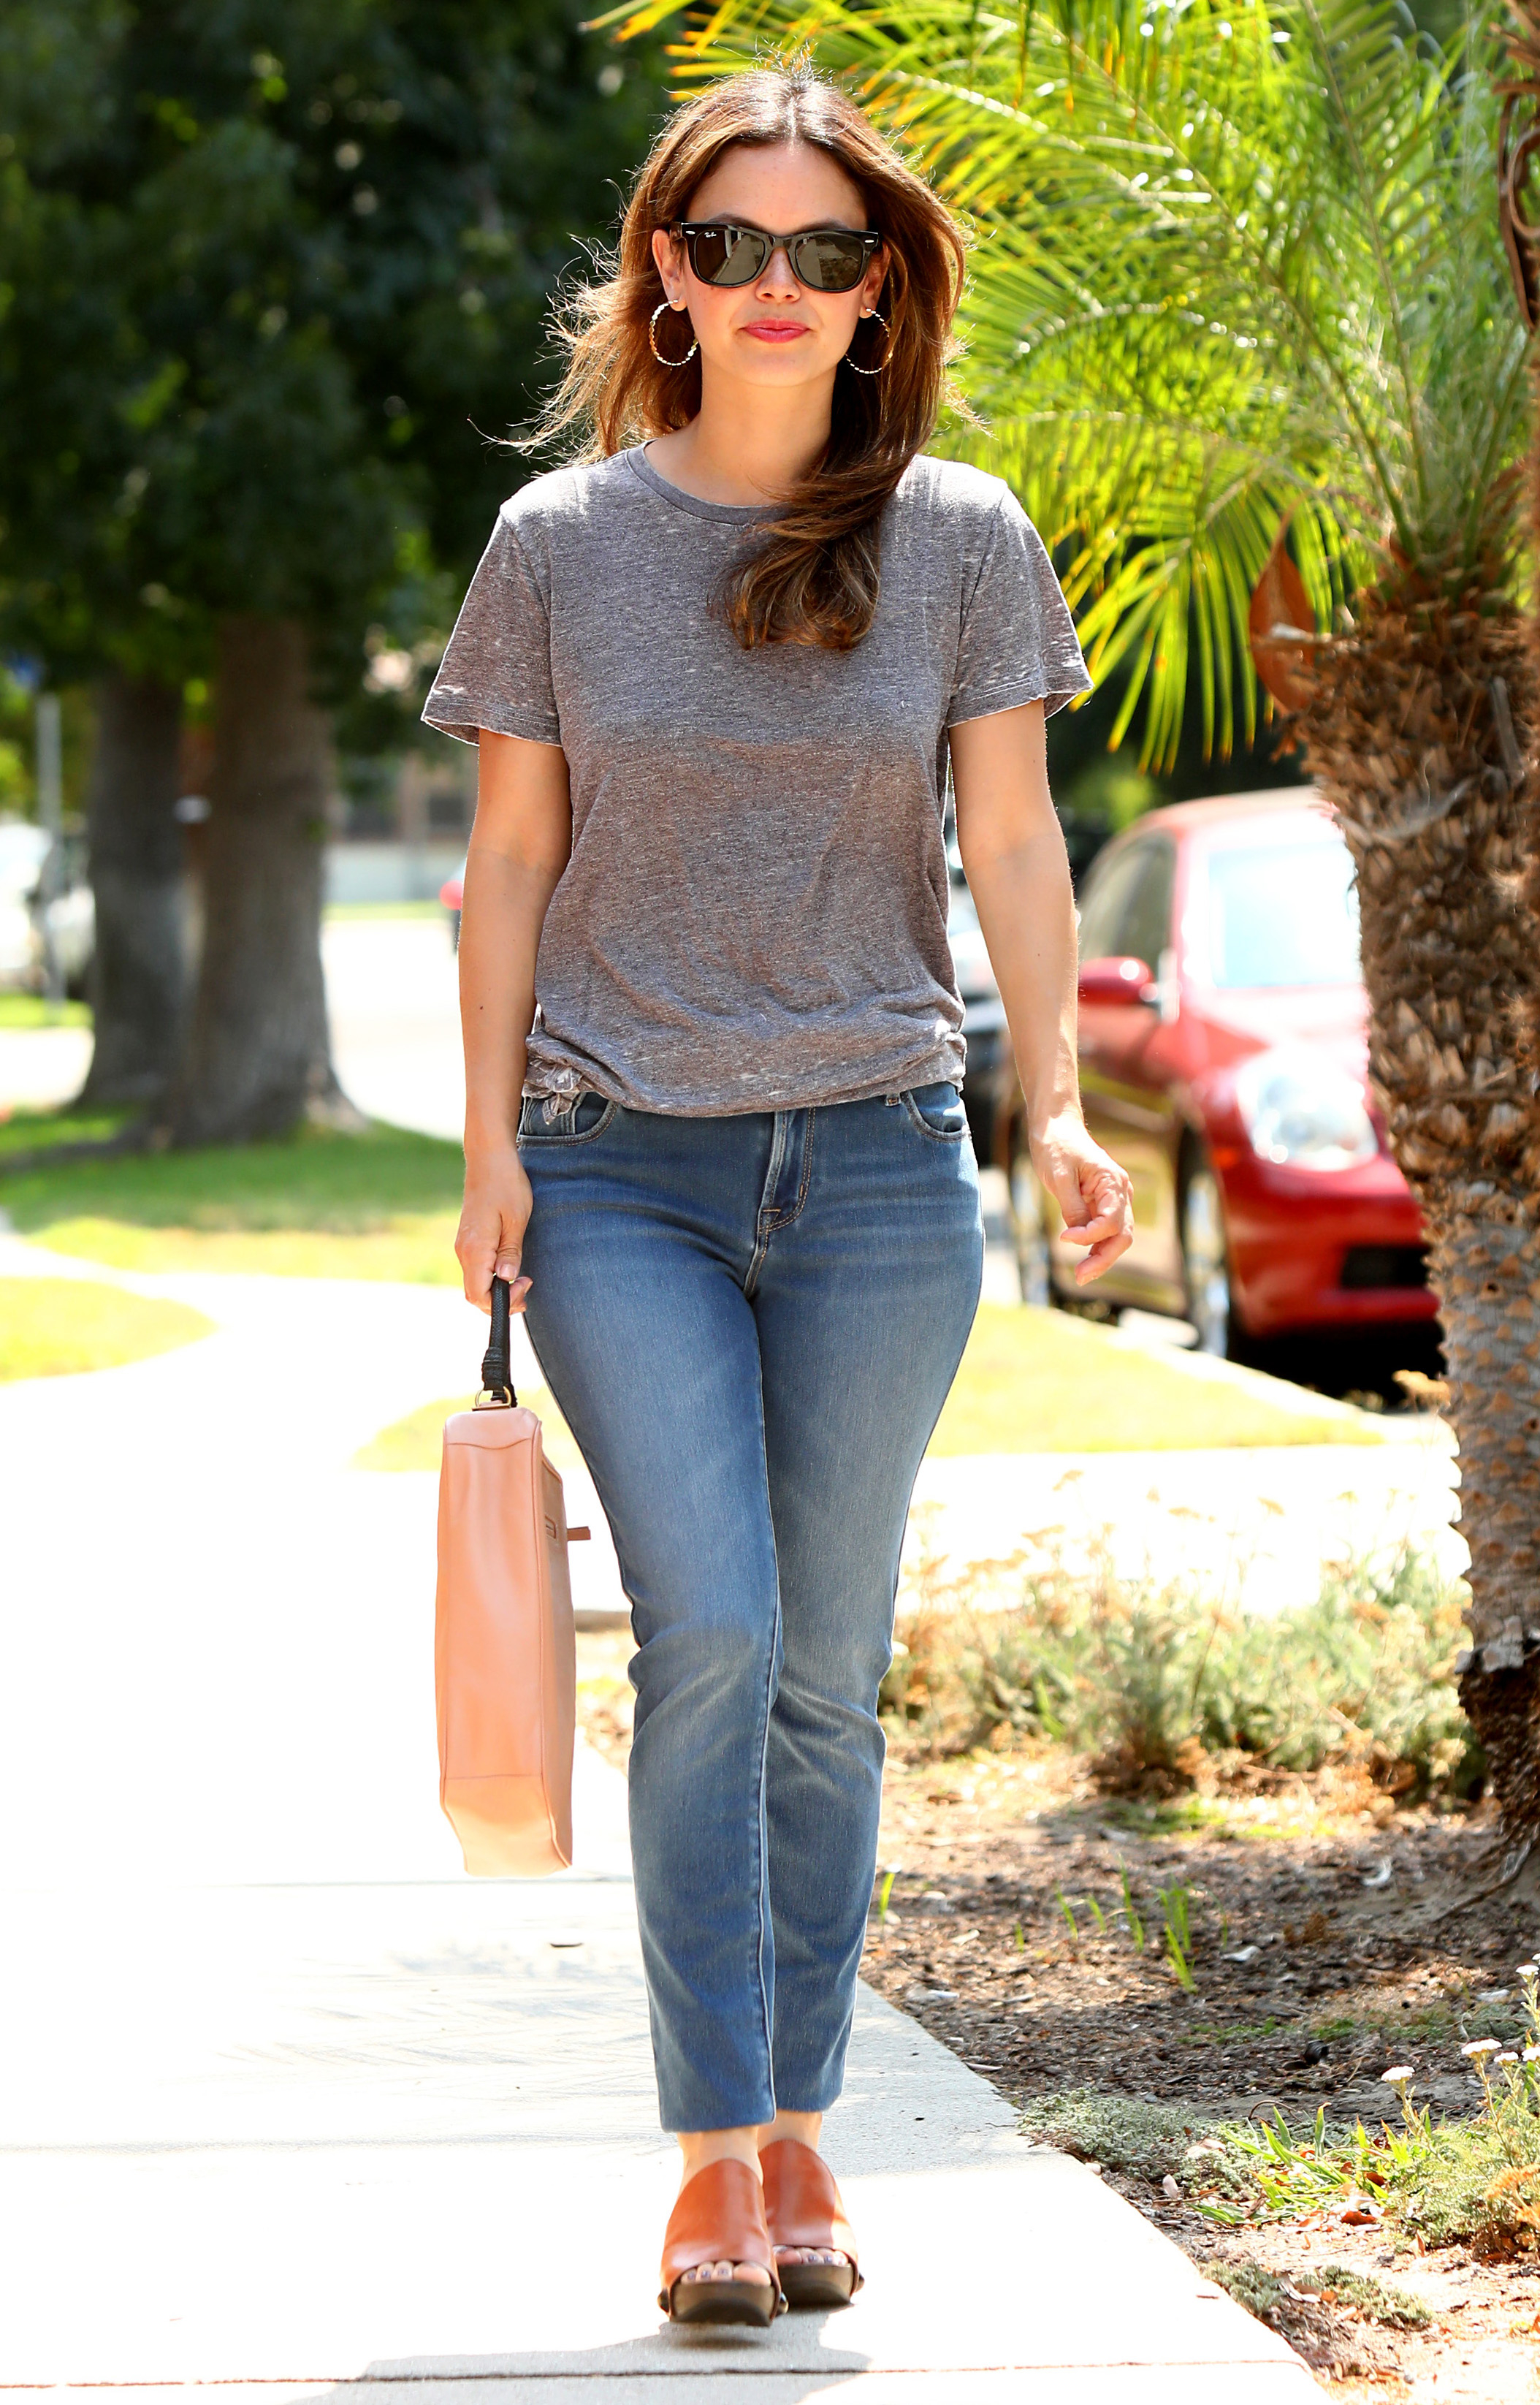 Blake Lively And Rachel Bilson Wore The Same Old Navy Jeans